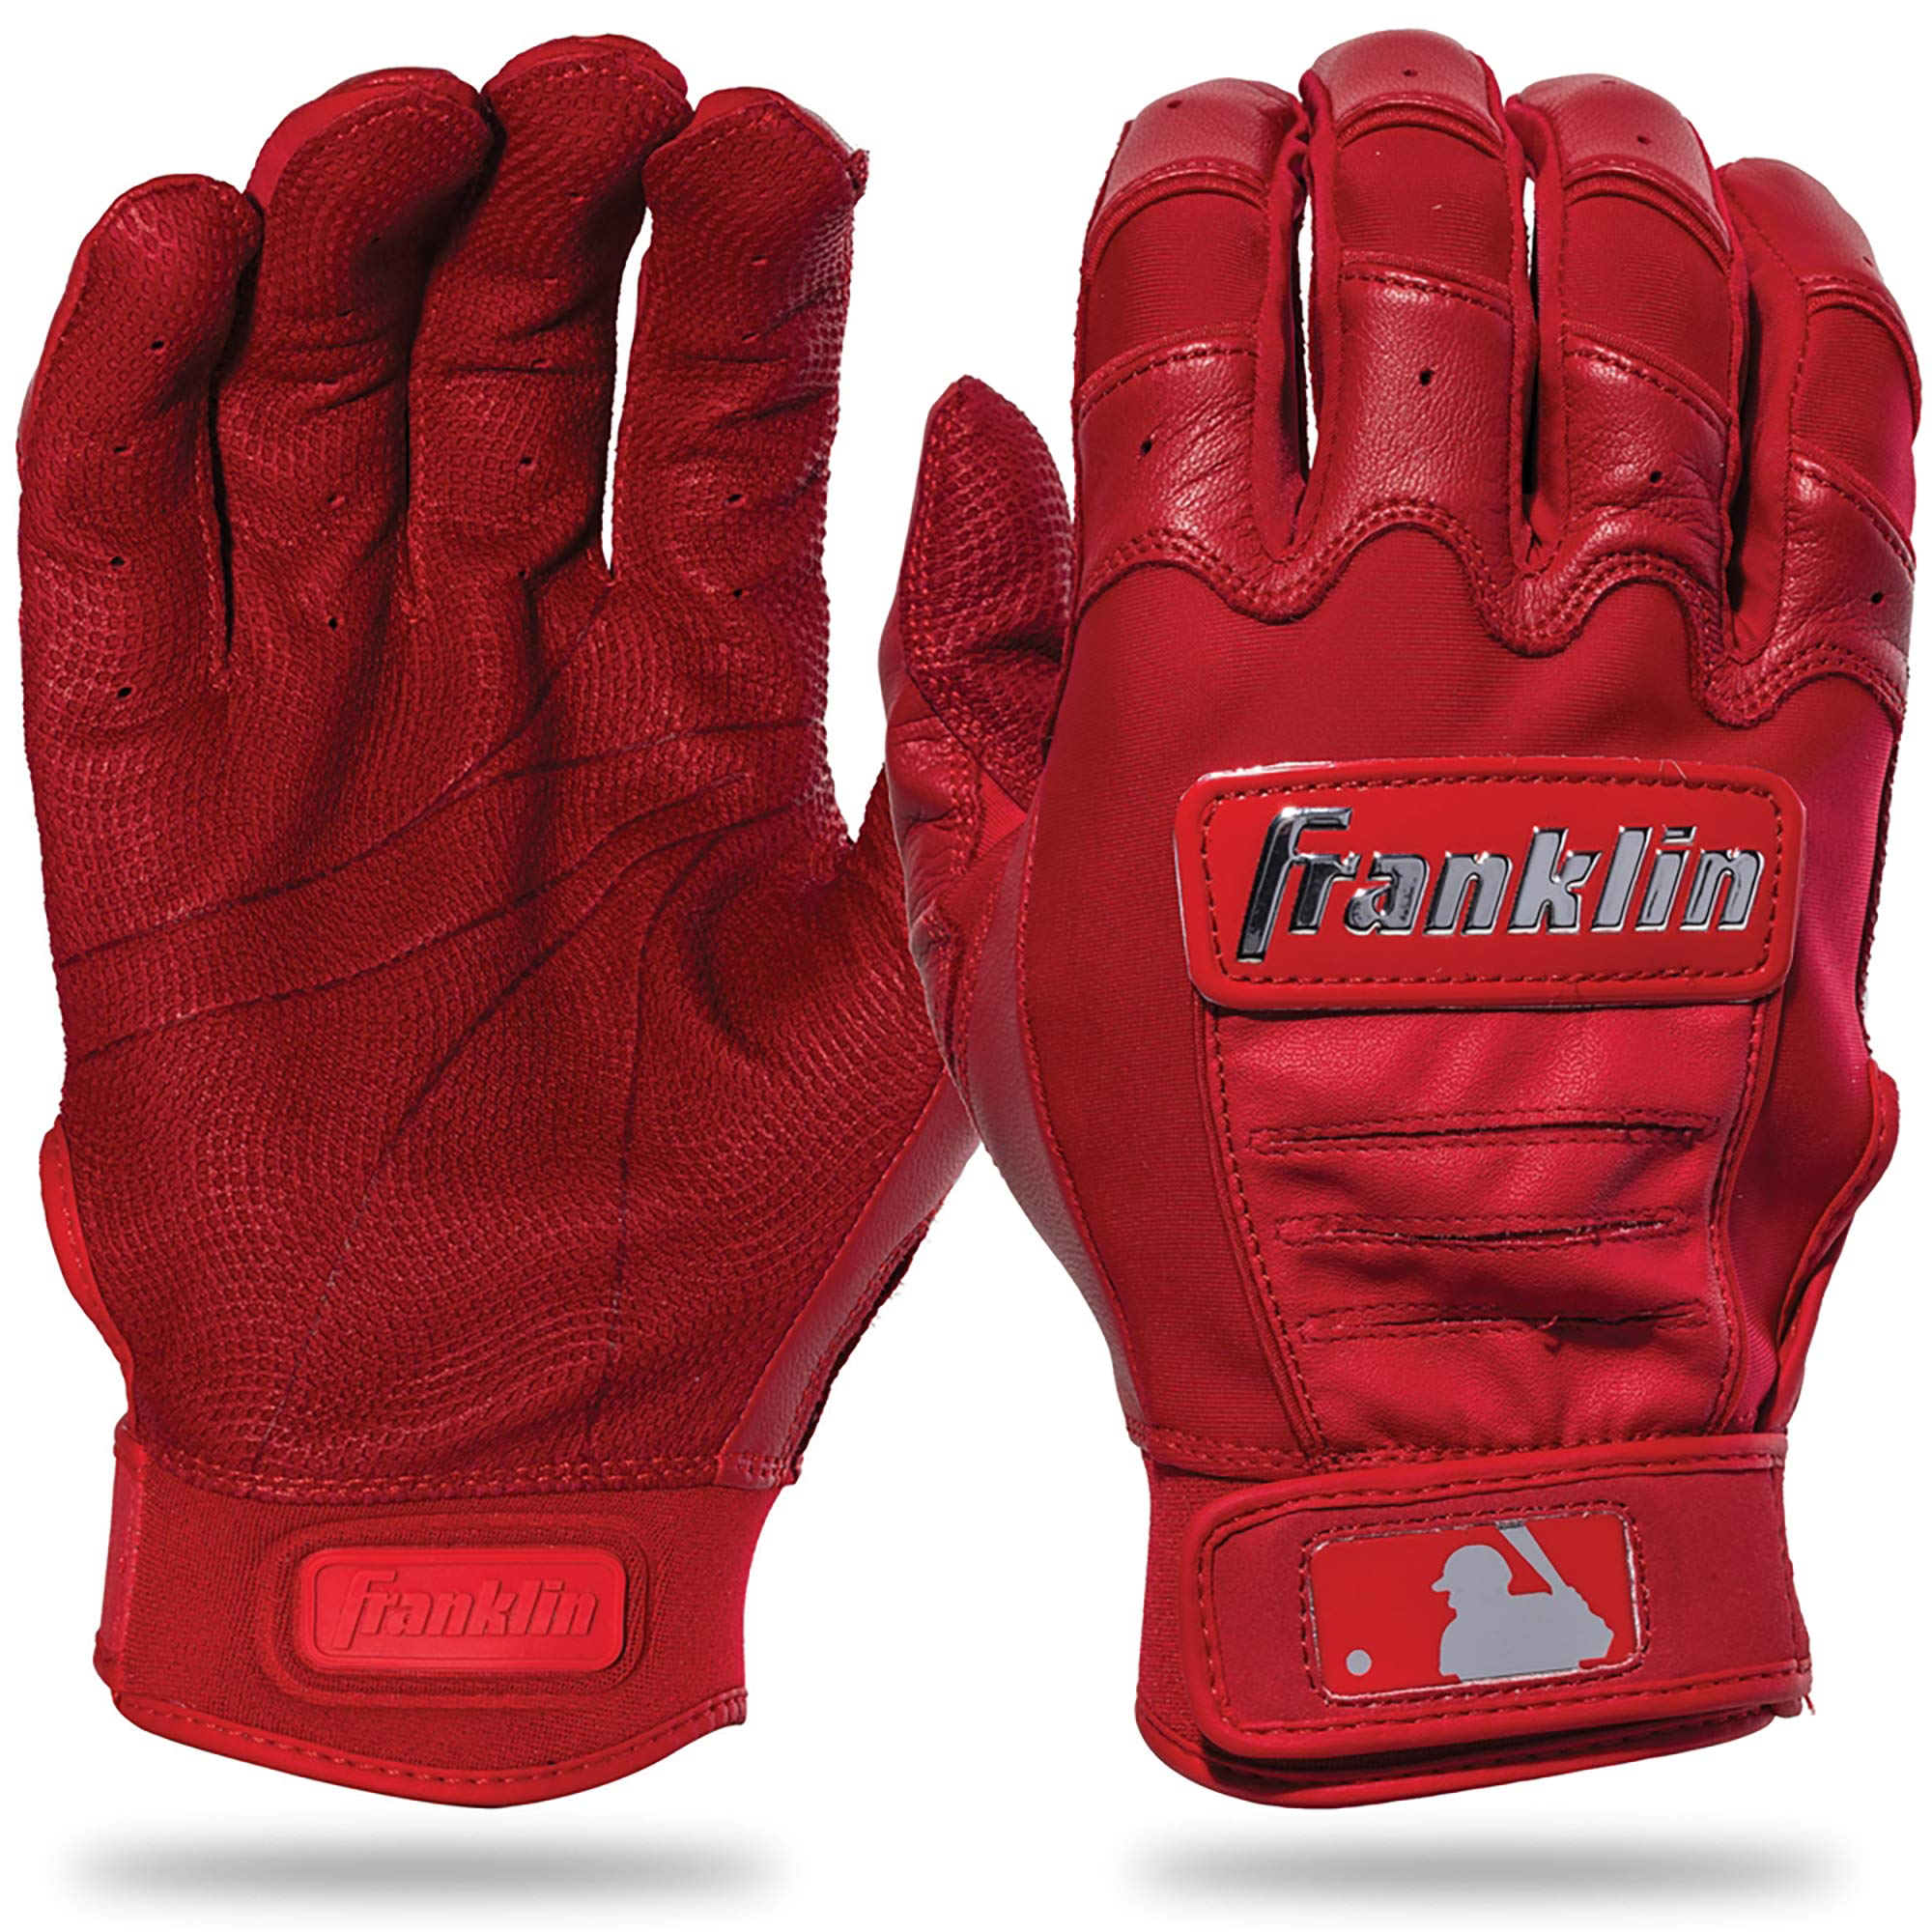 Franklin Sports CFX Pro Full Color Chrome Series Batting Gloves CFX Pro Full Color Chrome Batting Gloves, Red, Adult Small